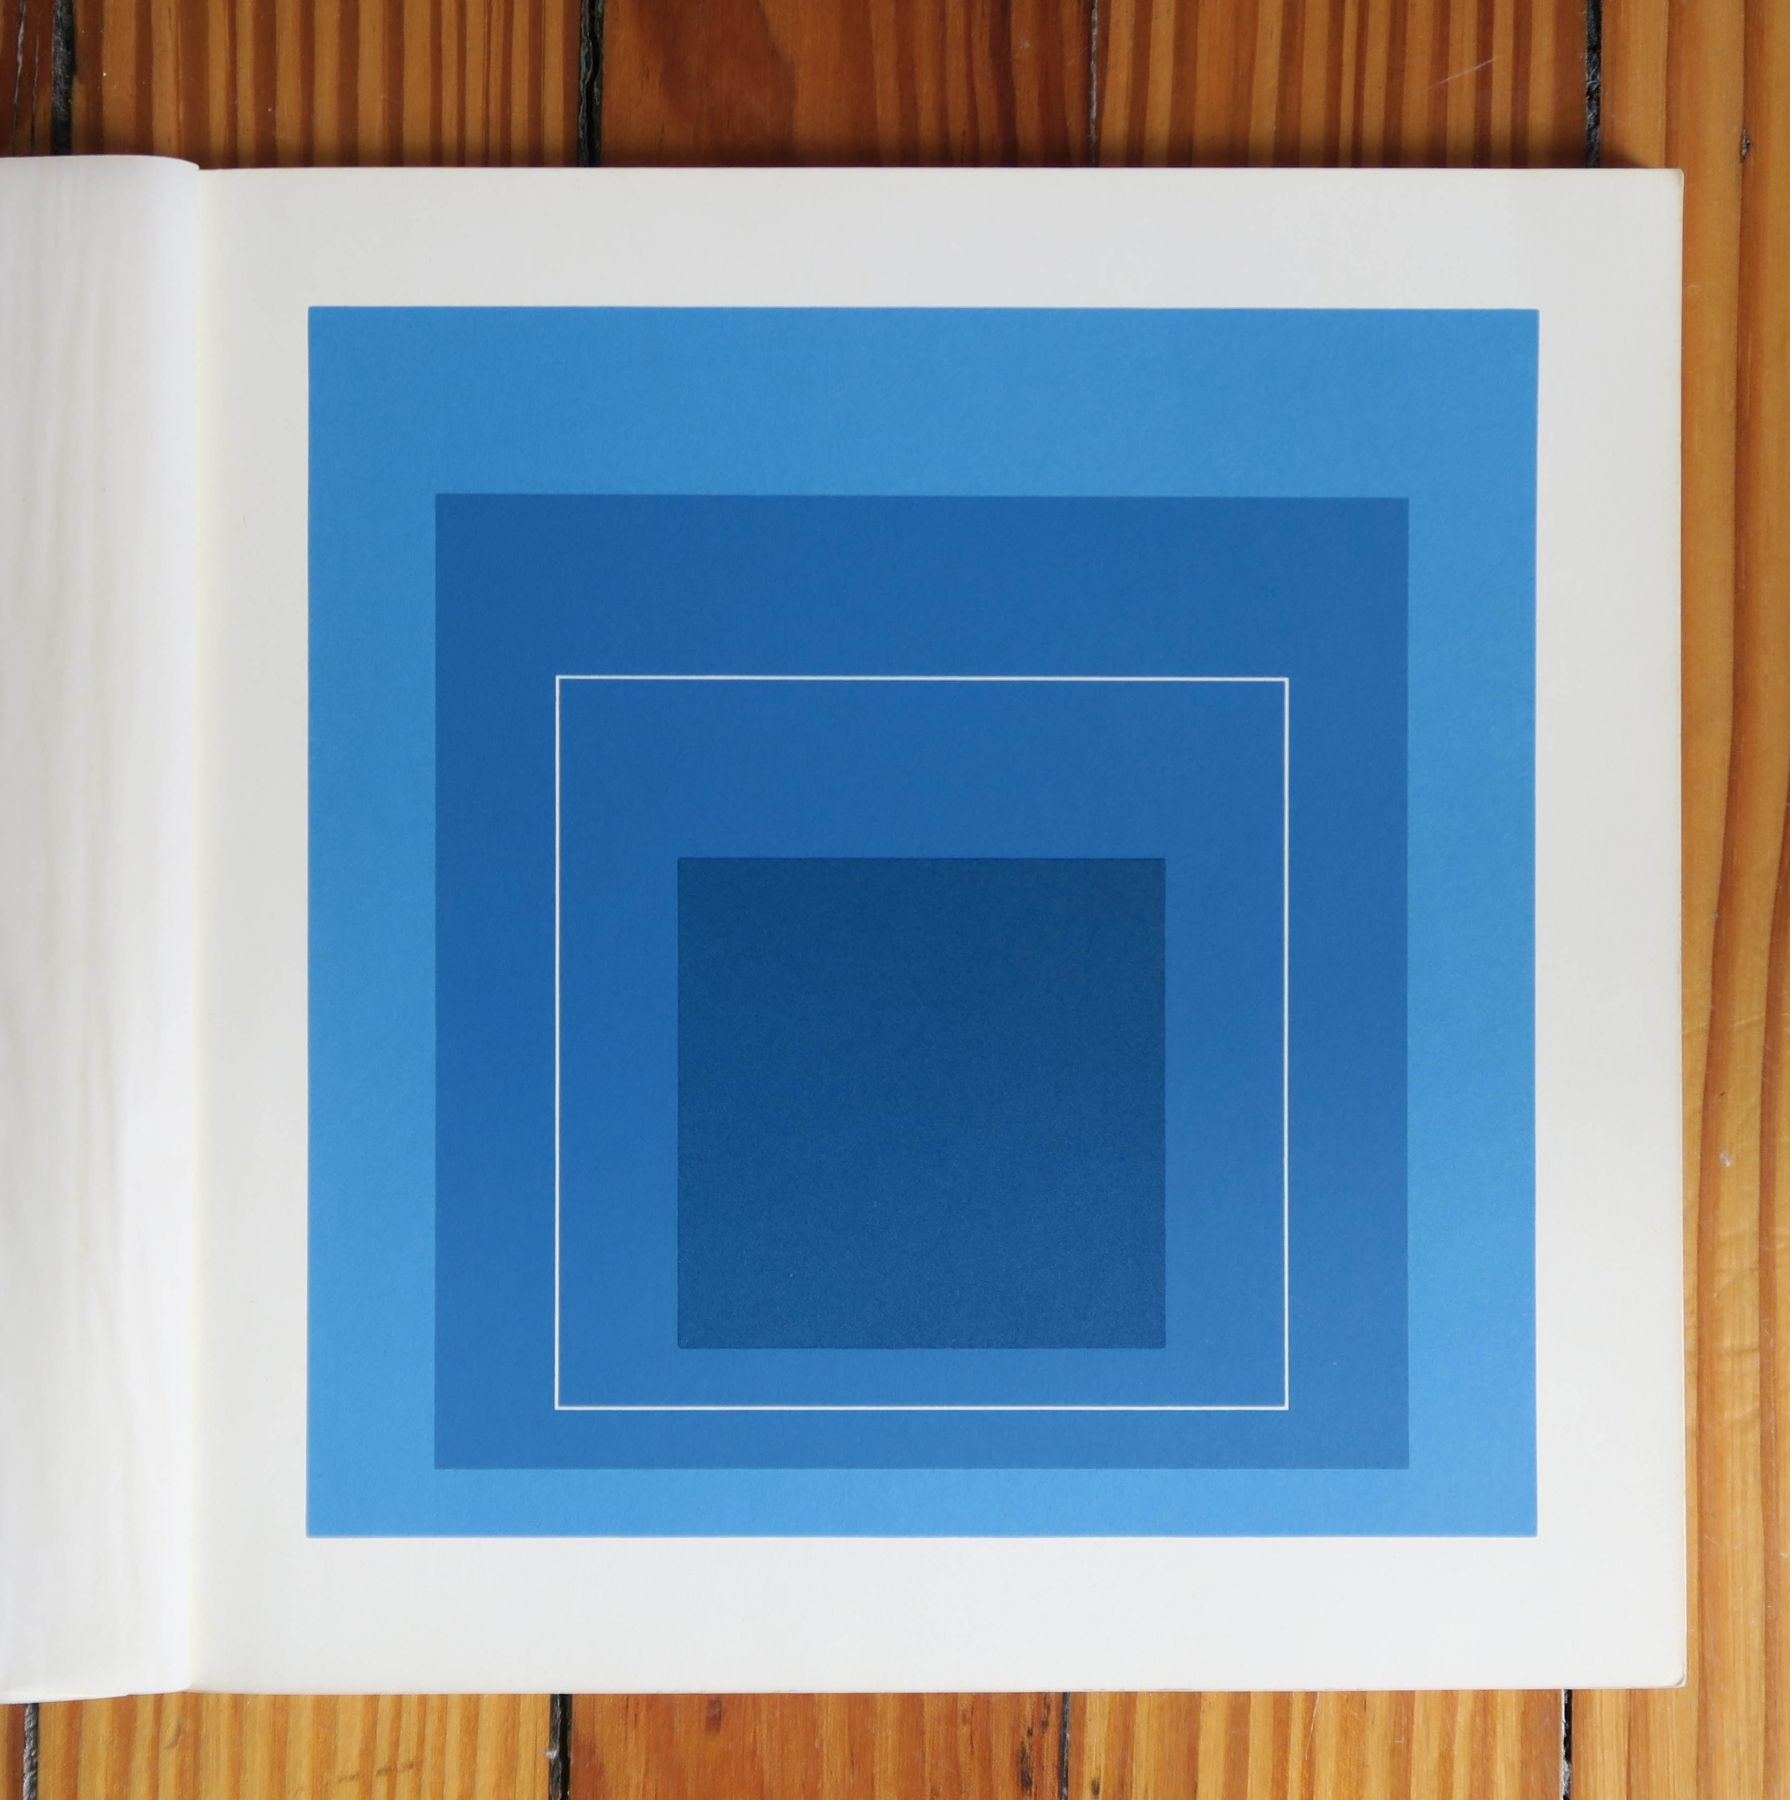 Alternate Projects, Josef Albers, White Line Squares